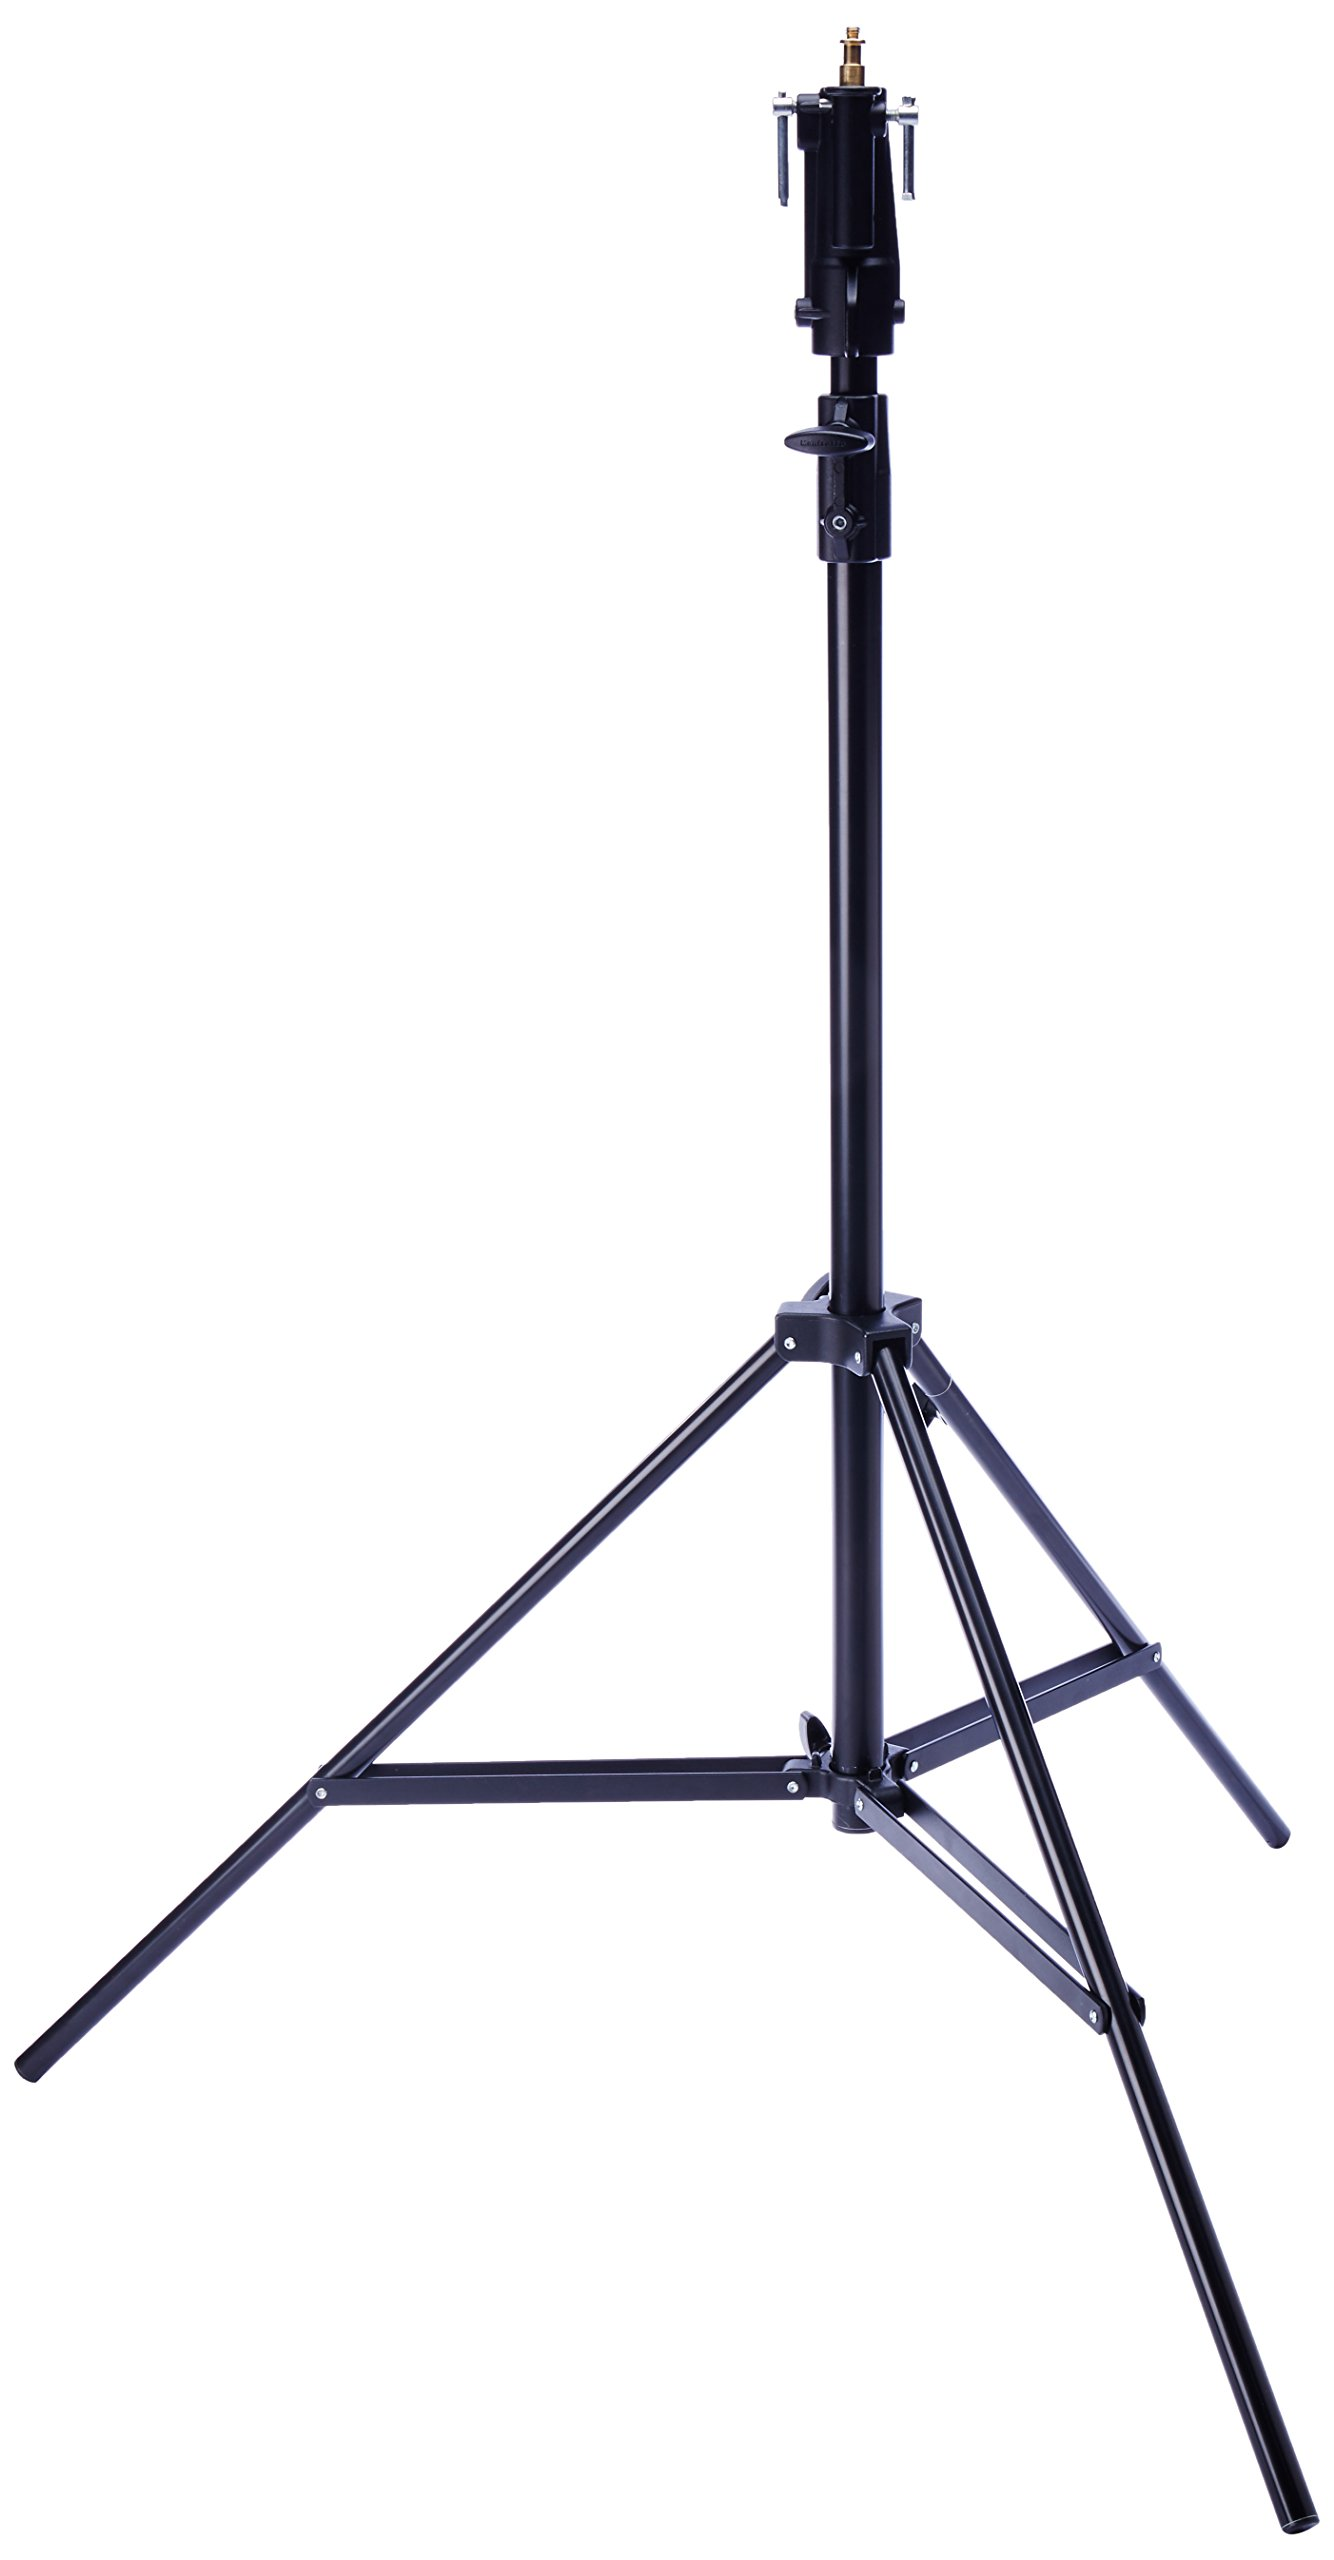 Manfrotto 008BU 2- Section Aluminum Cine Stand with Leveling Leg (Black)